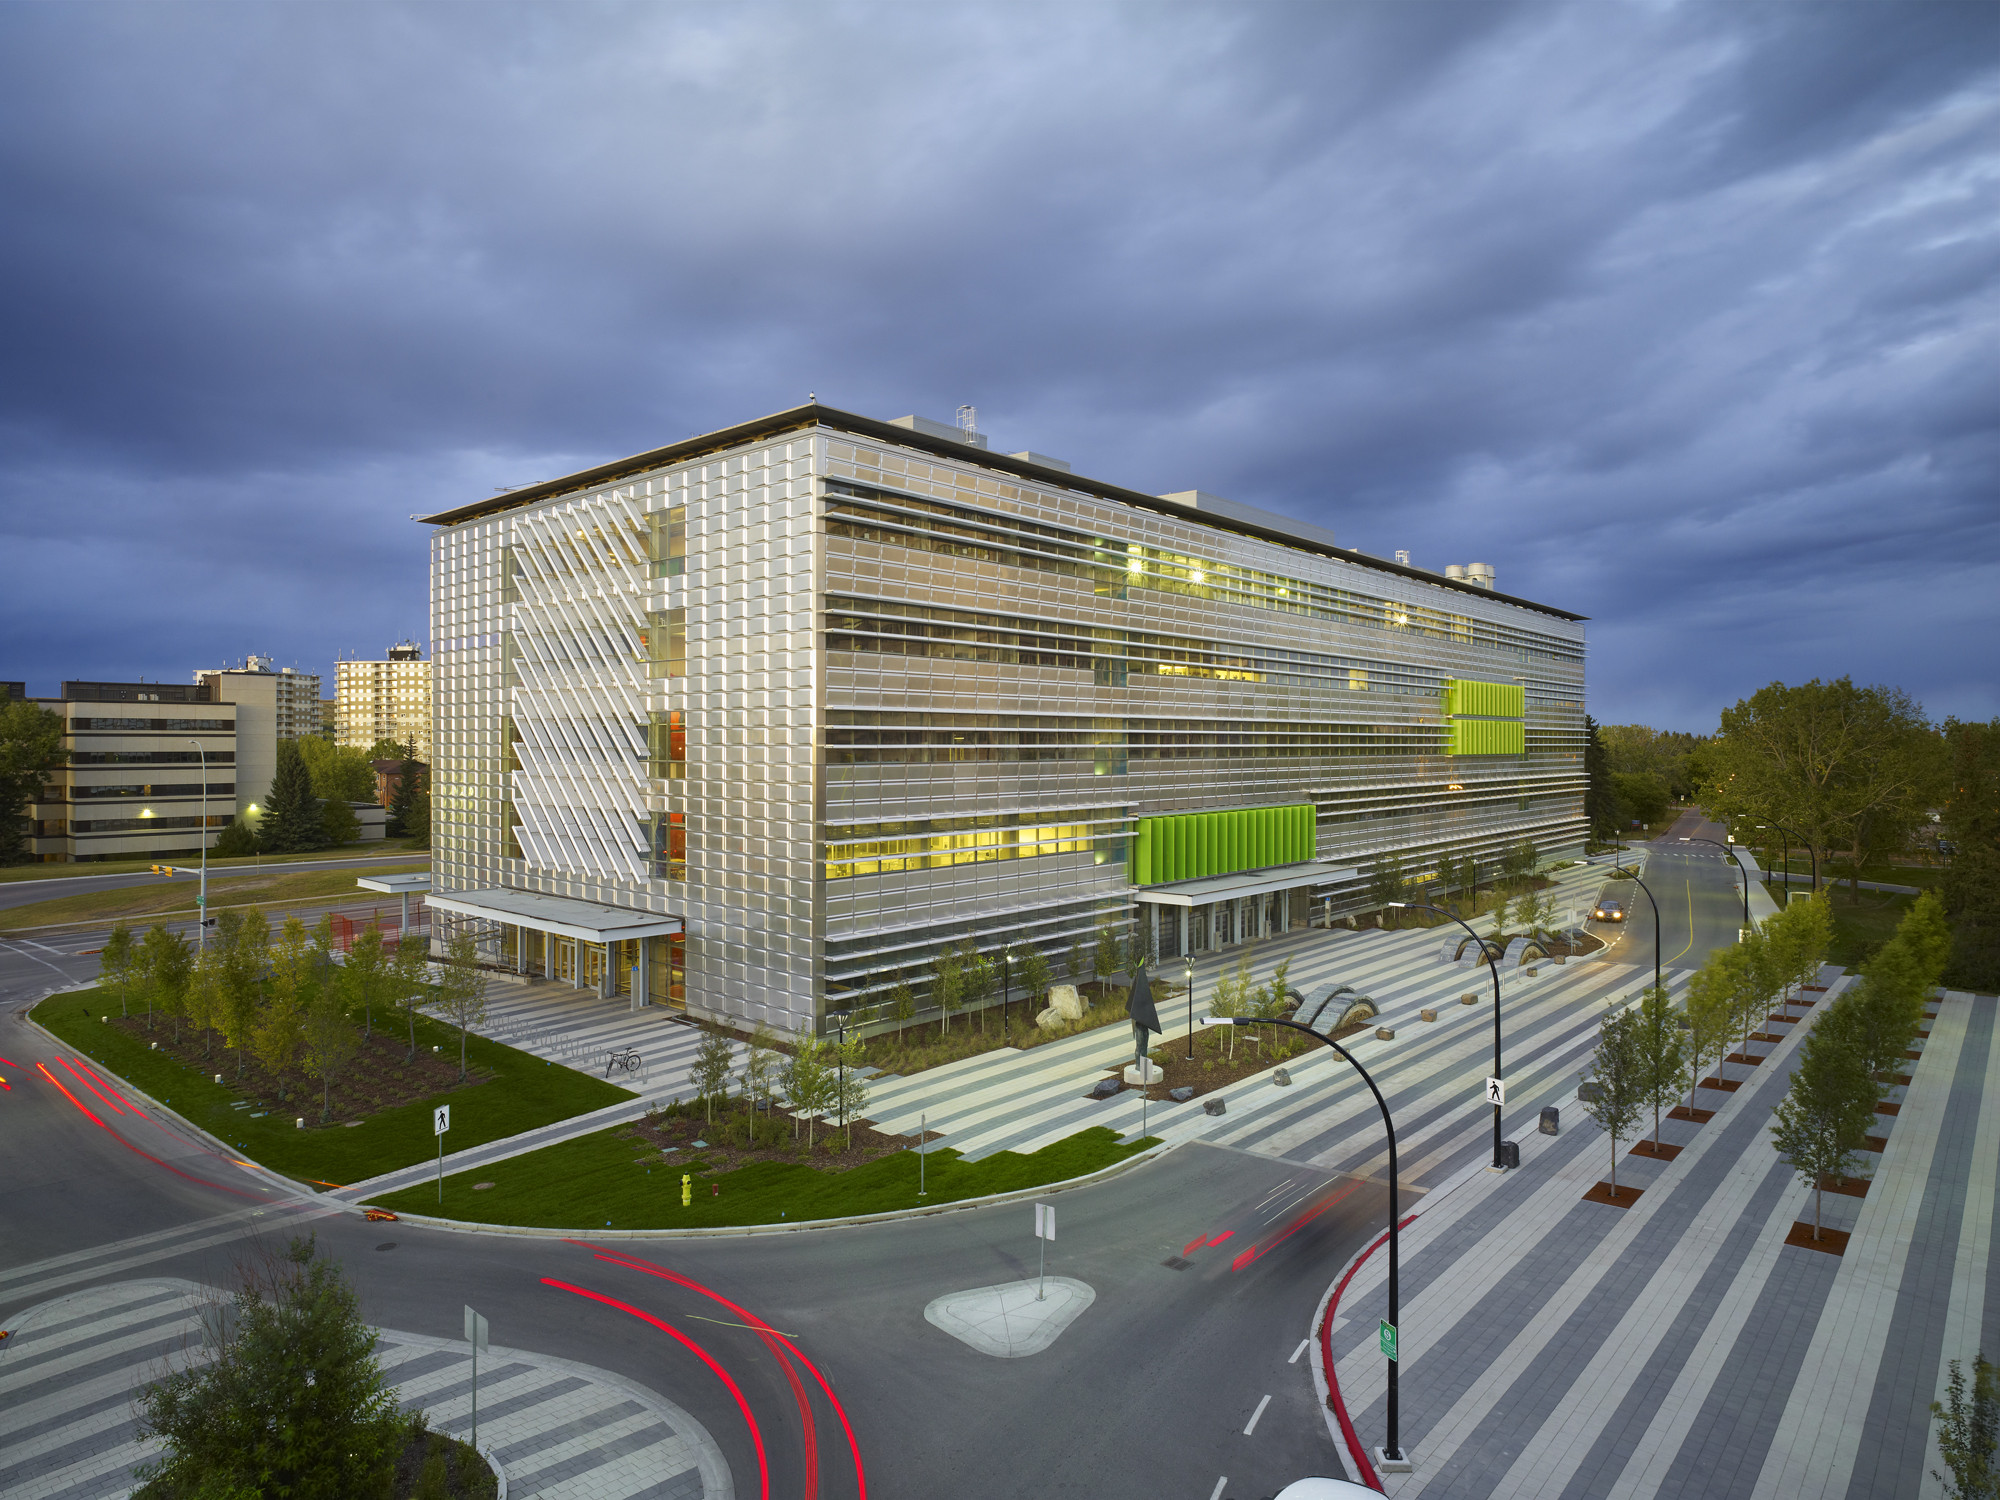 Energy Environment Experiential Learning / Perkins+Will + DIALOG, © Tom Arban